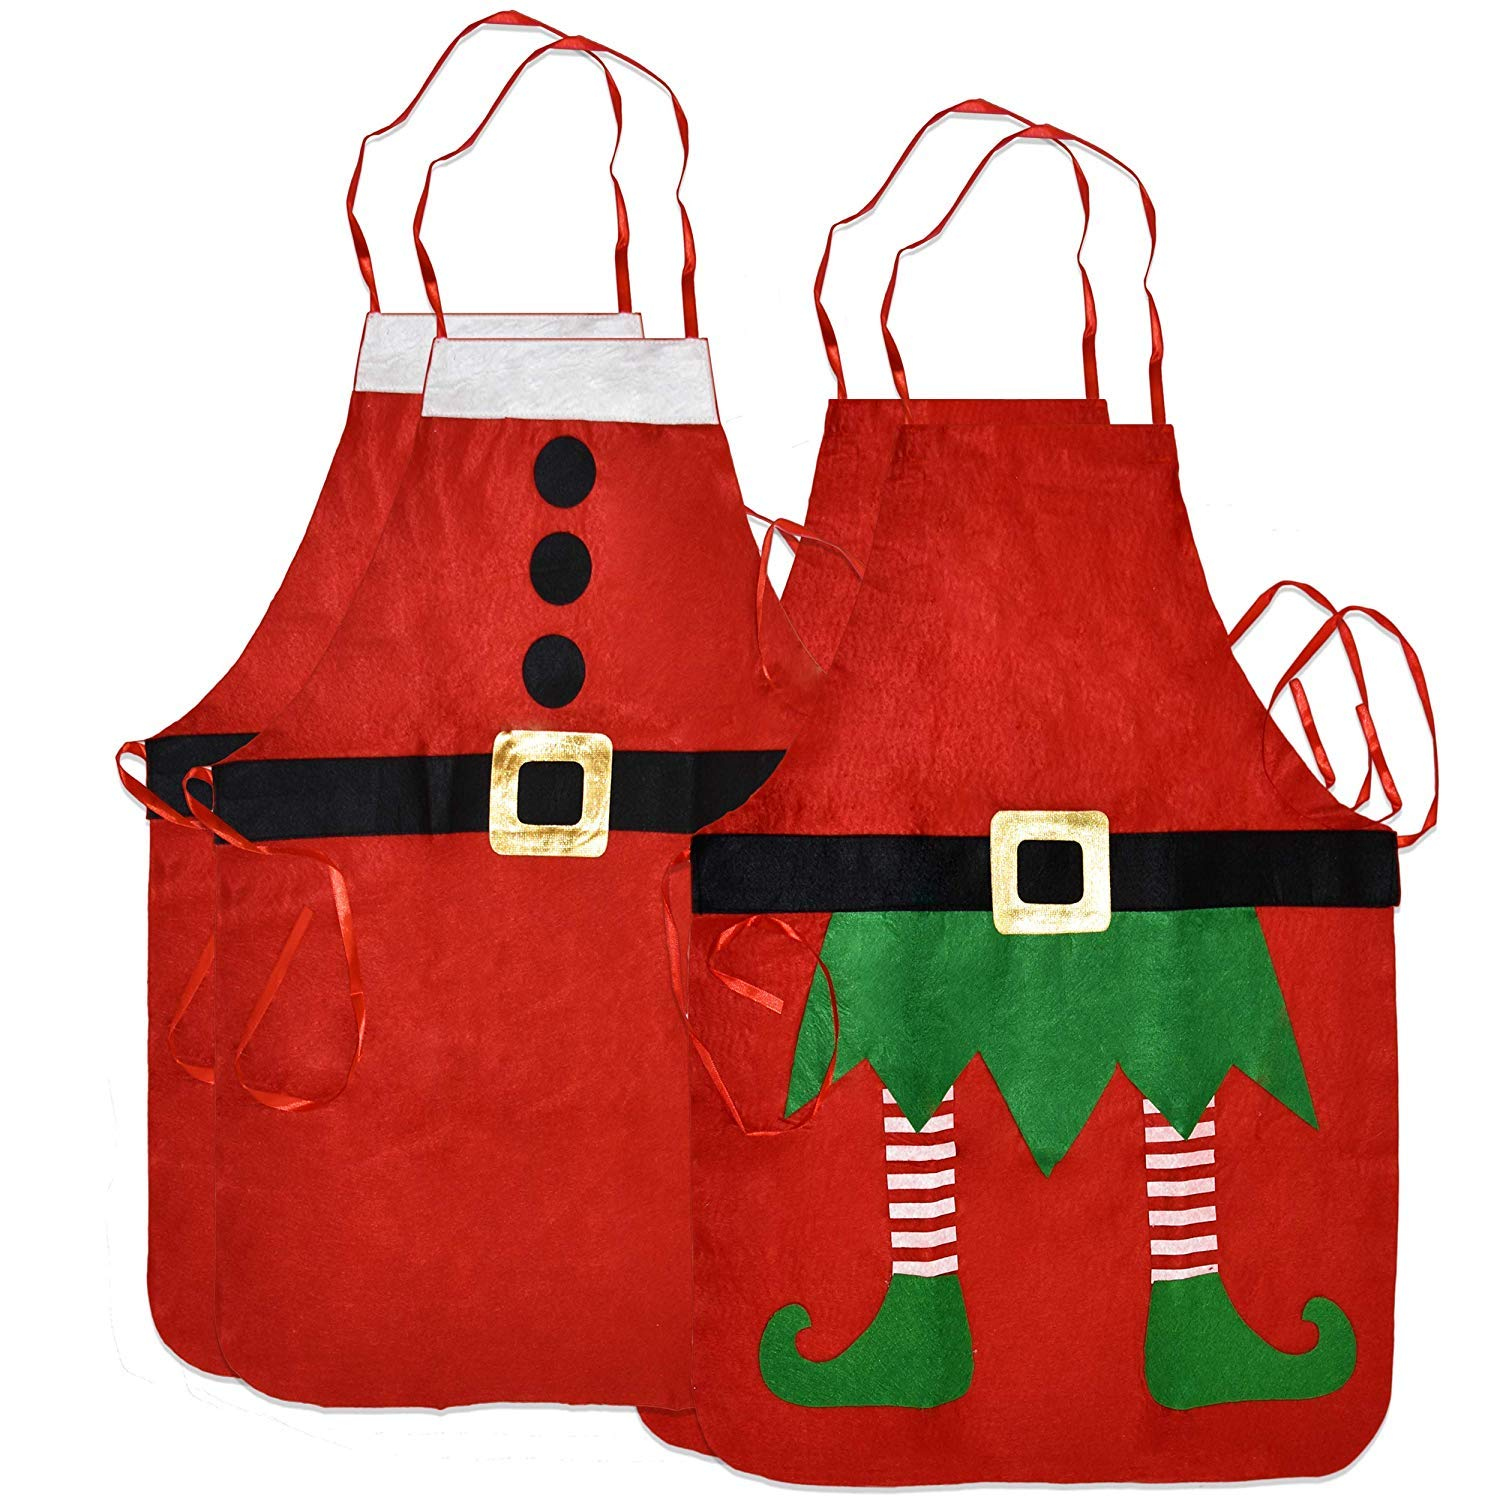 Gift Boutique 4 Pack Christmas Aprons Includes 2 Green Elf Apron and 2 Red Santa Claus Apron for Adult Women and Men for Holiday Party Costume Dress Up Accessories